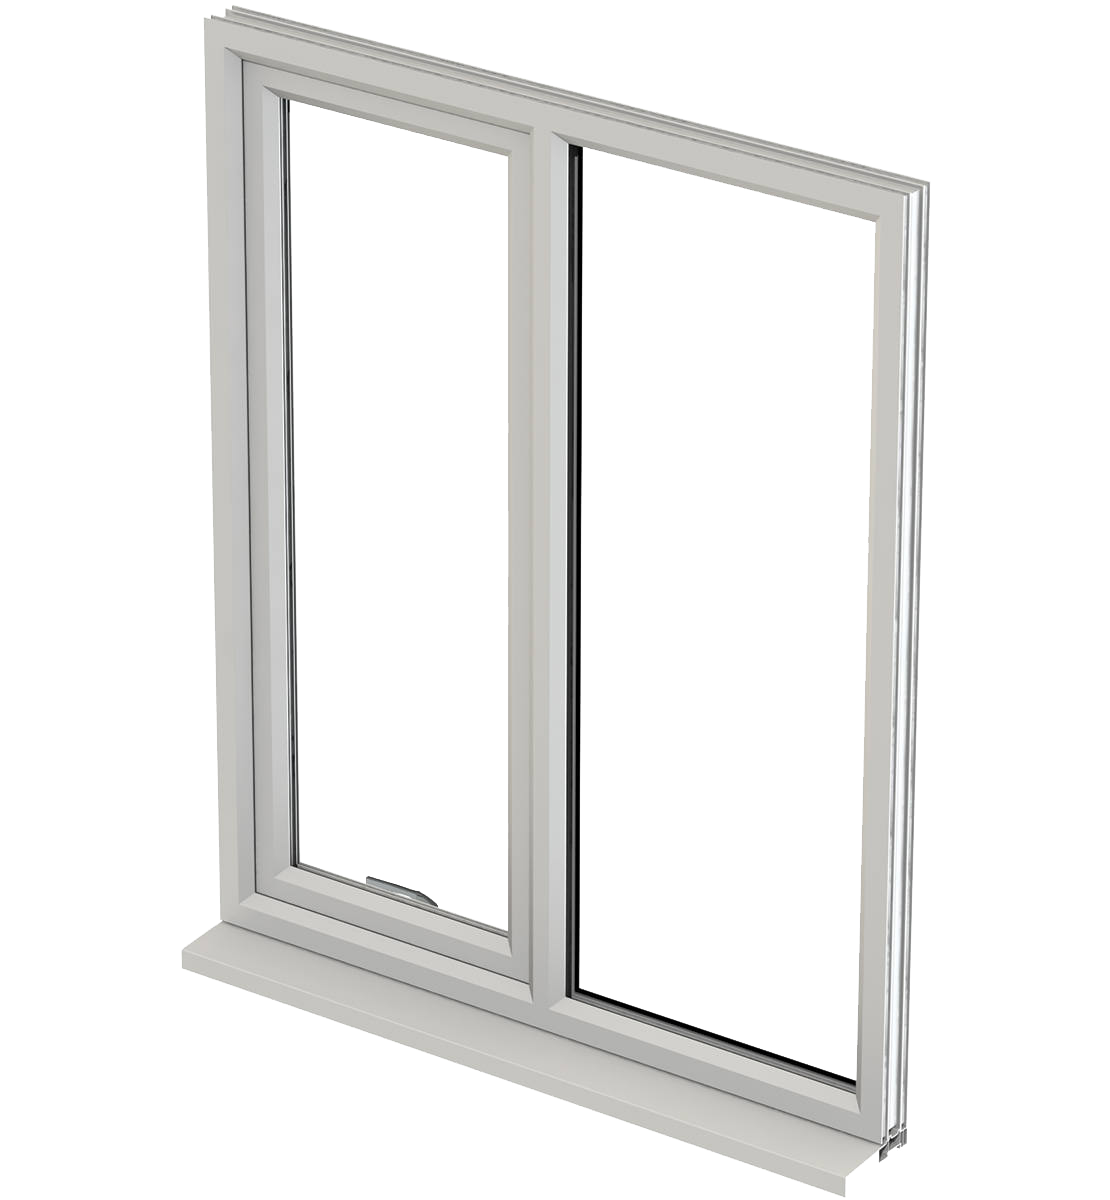 double glazing products oxford